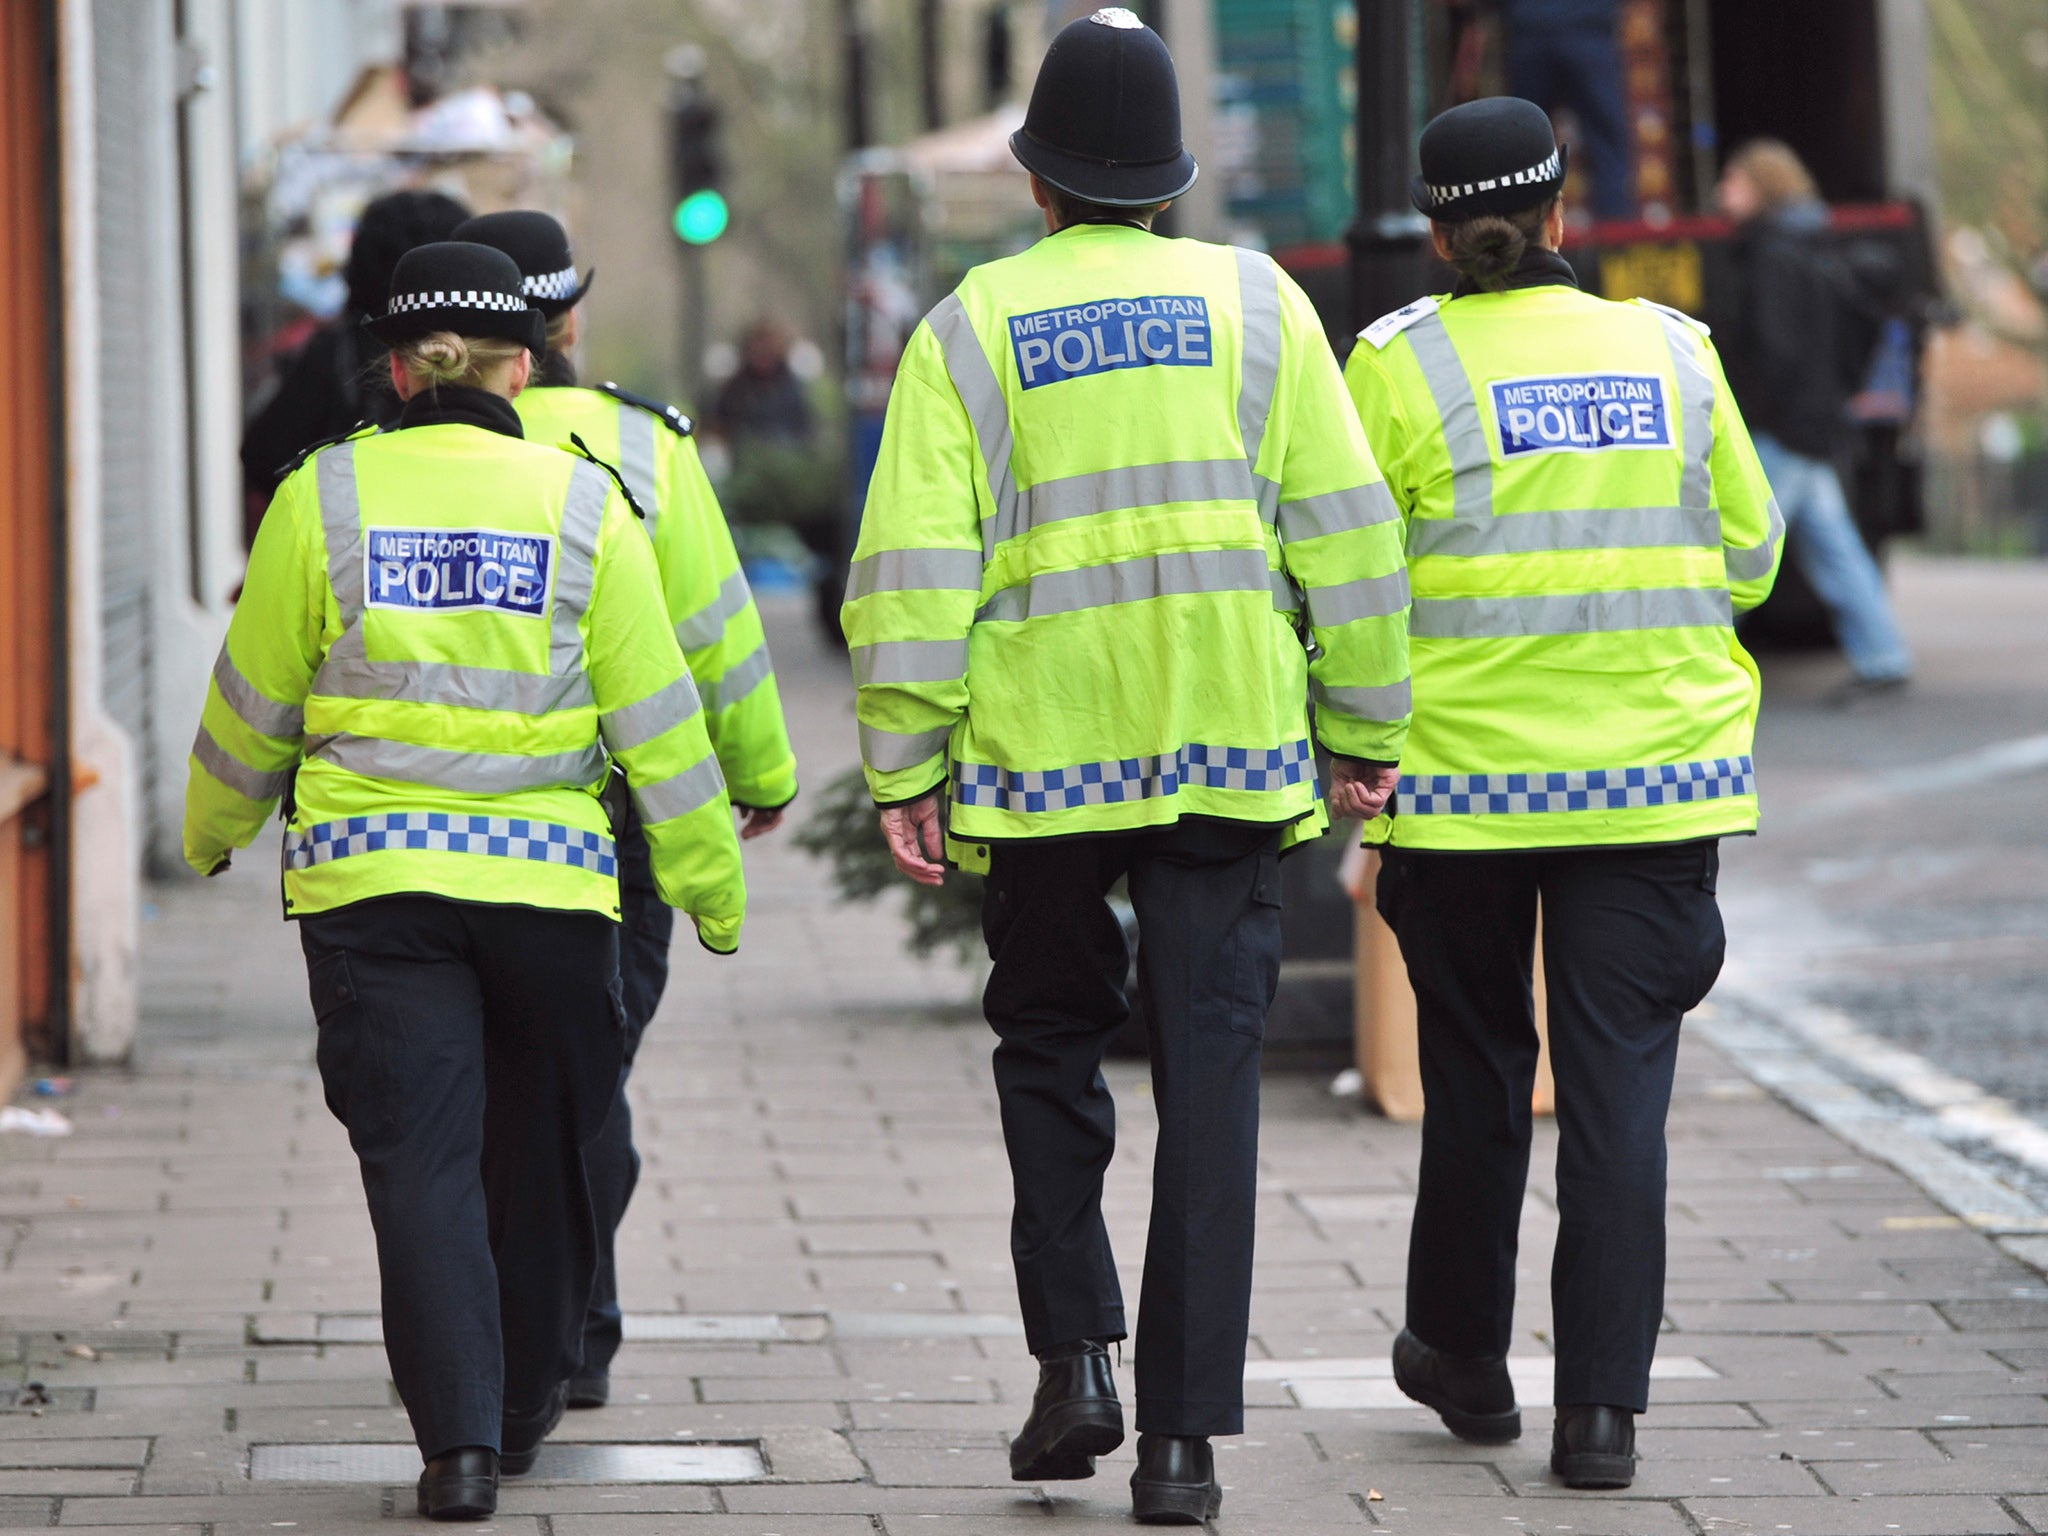 Misogyny could be treated as a hate crime by police across UK